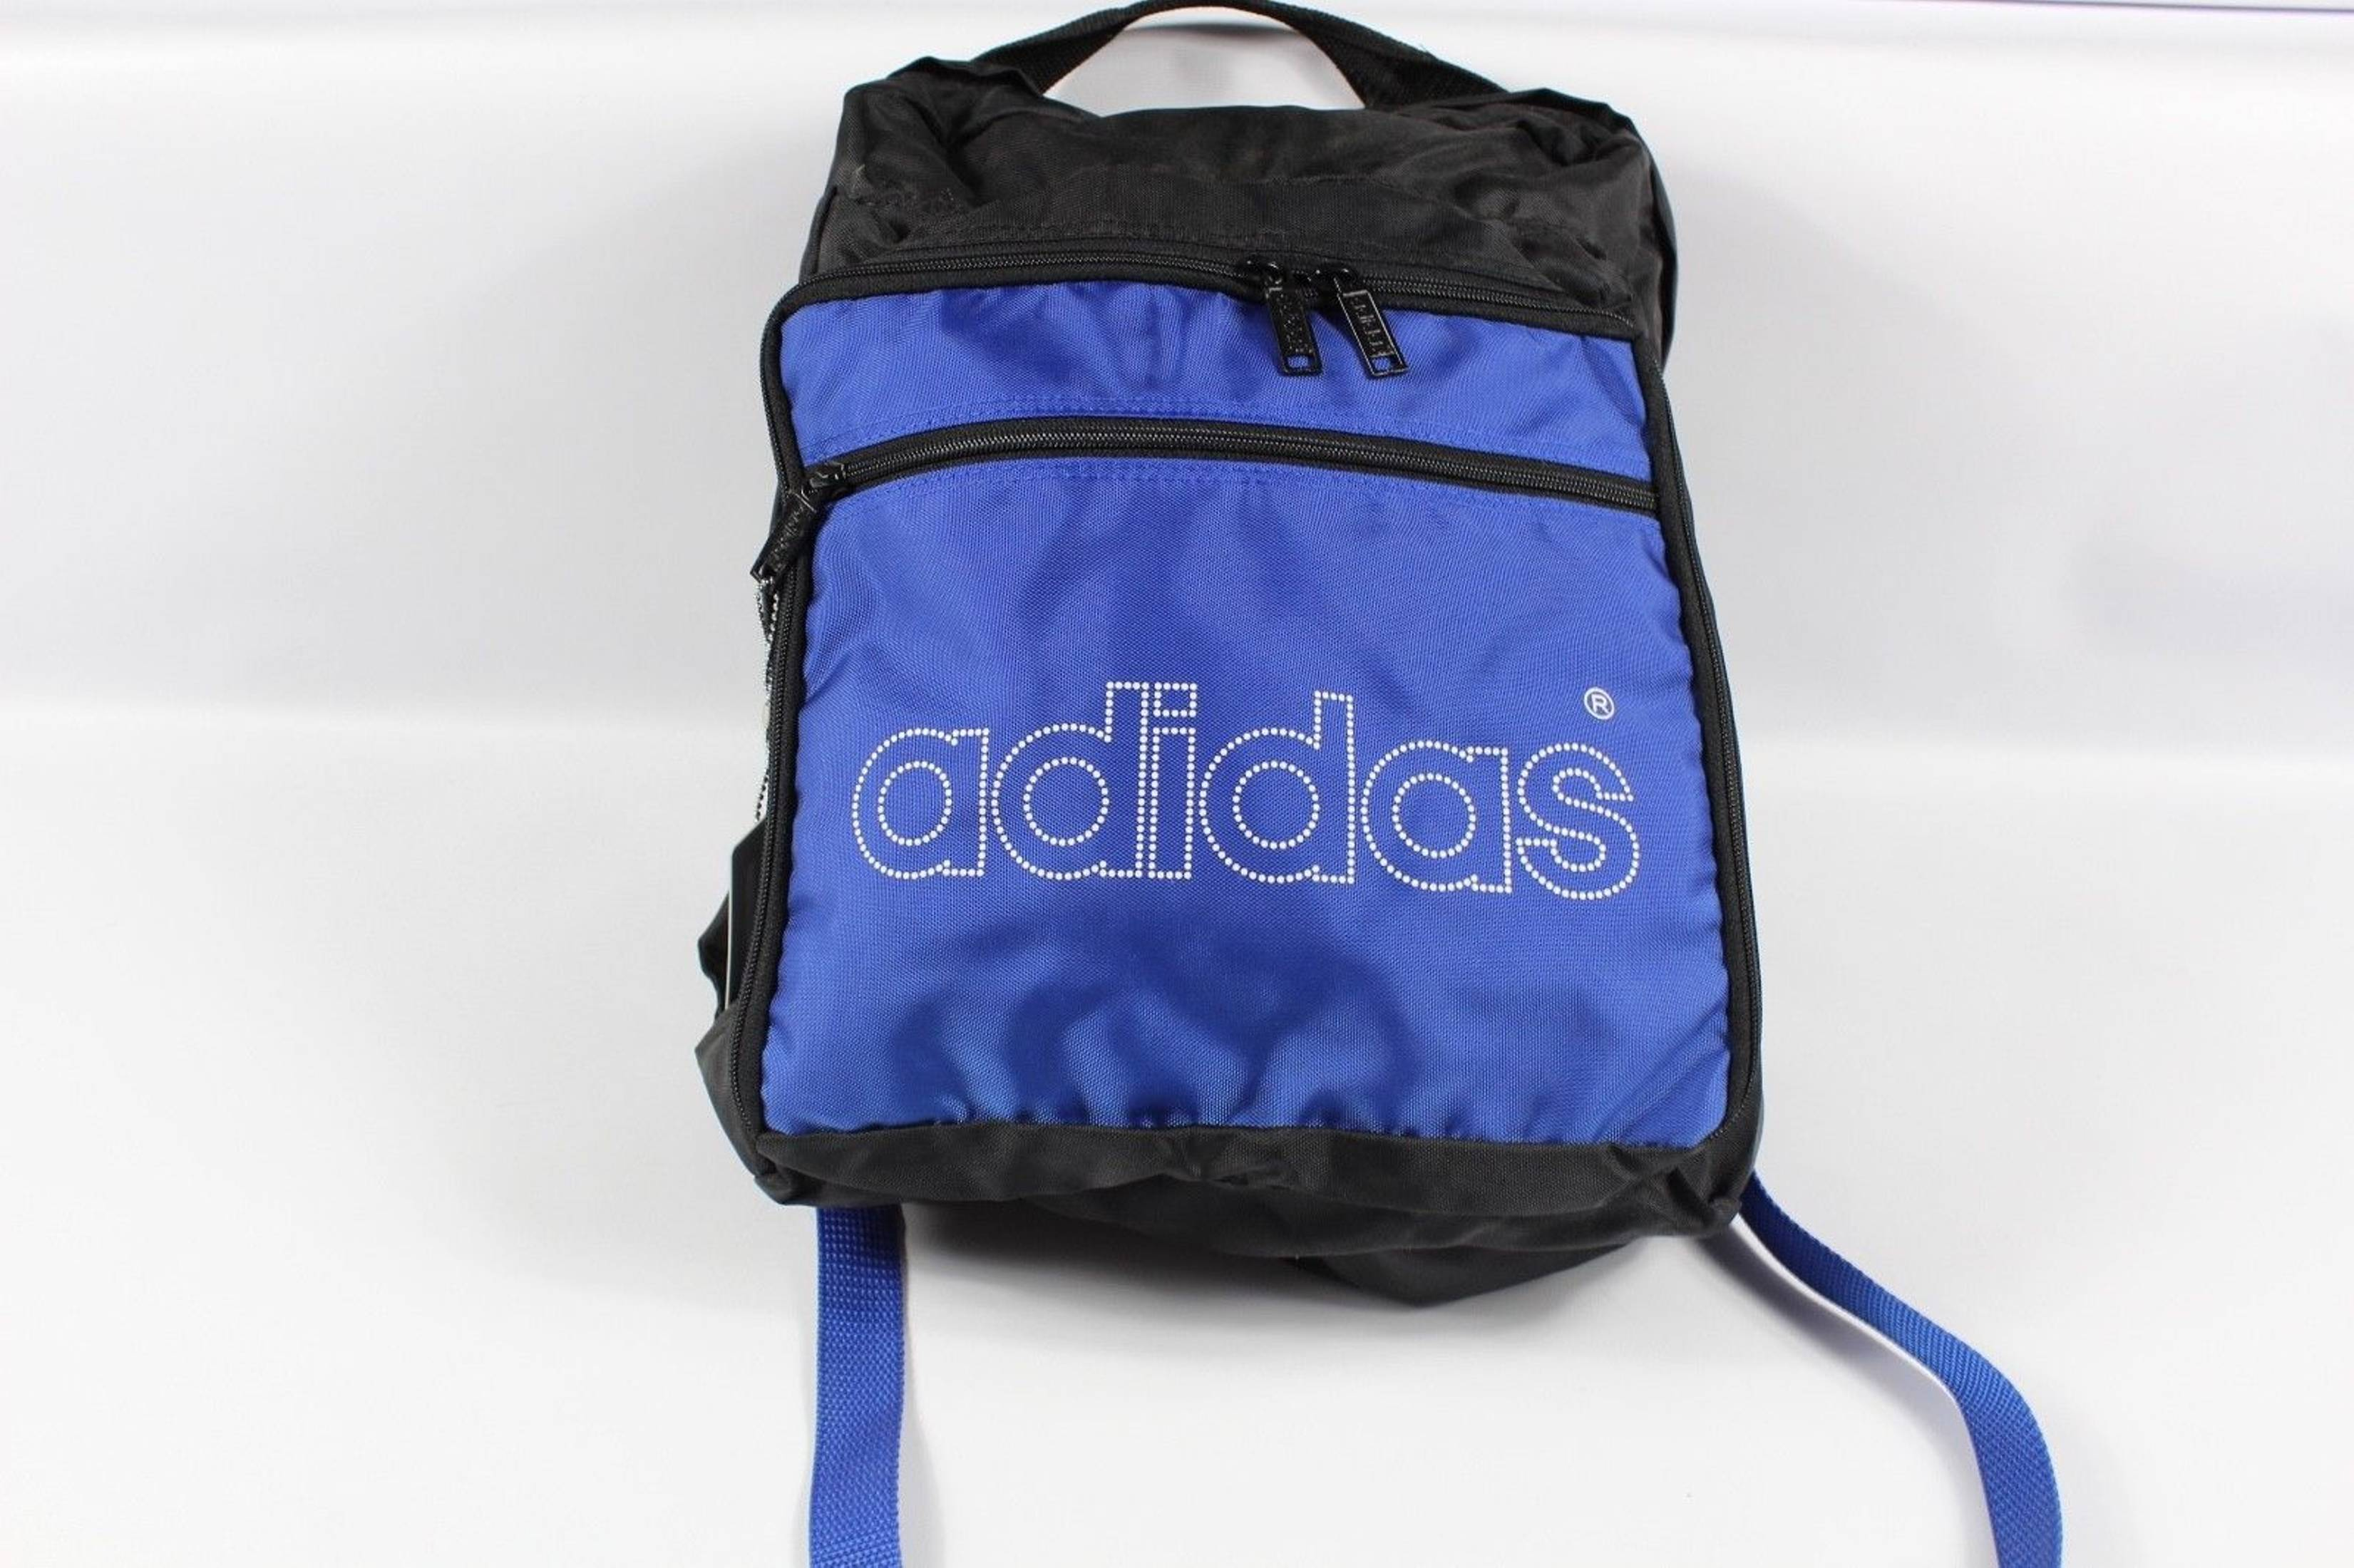 4509b143b9 Adidas New Vintage 80s Adidas Spell Out Trefoil Nylon Backpack Book Bag  Black Blue Size one size - Bags   Luggage for Sale - Grailed